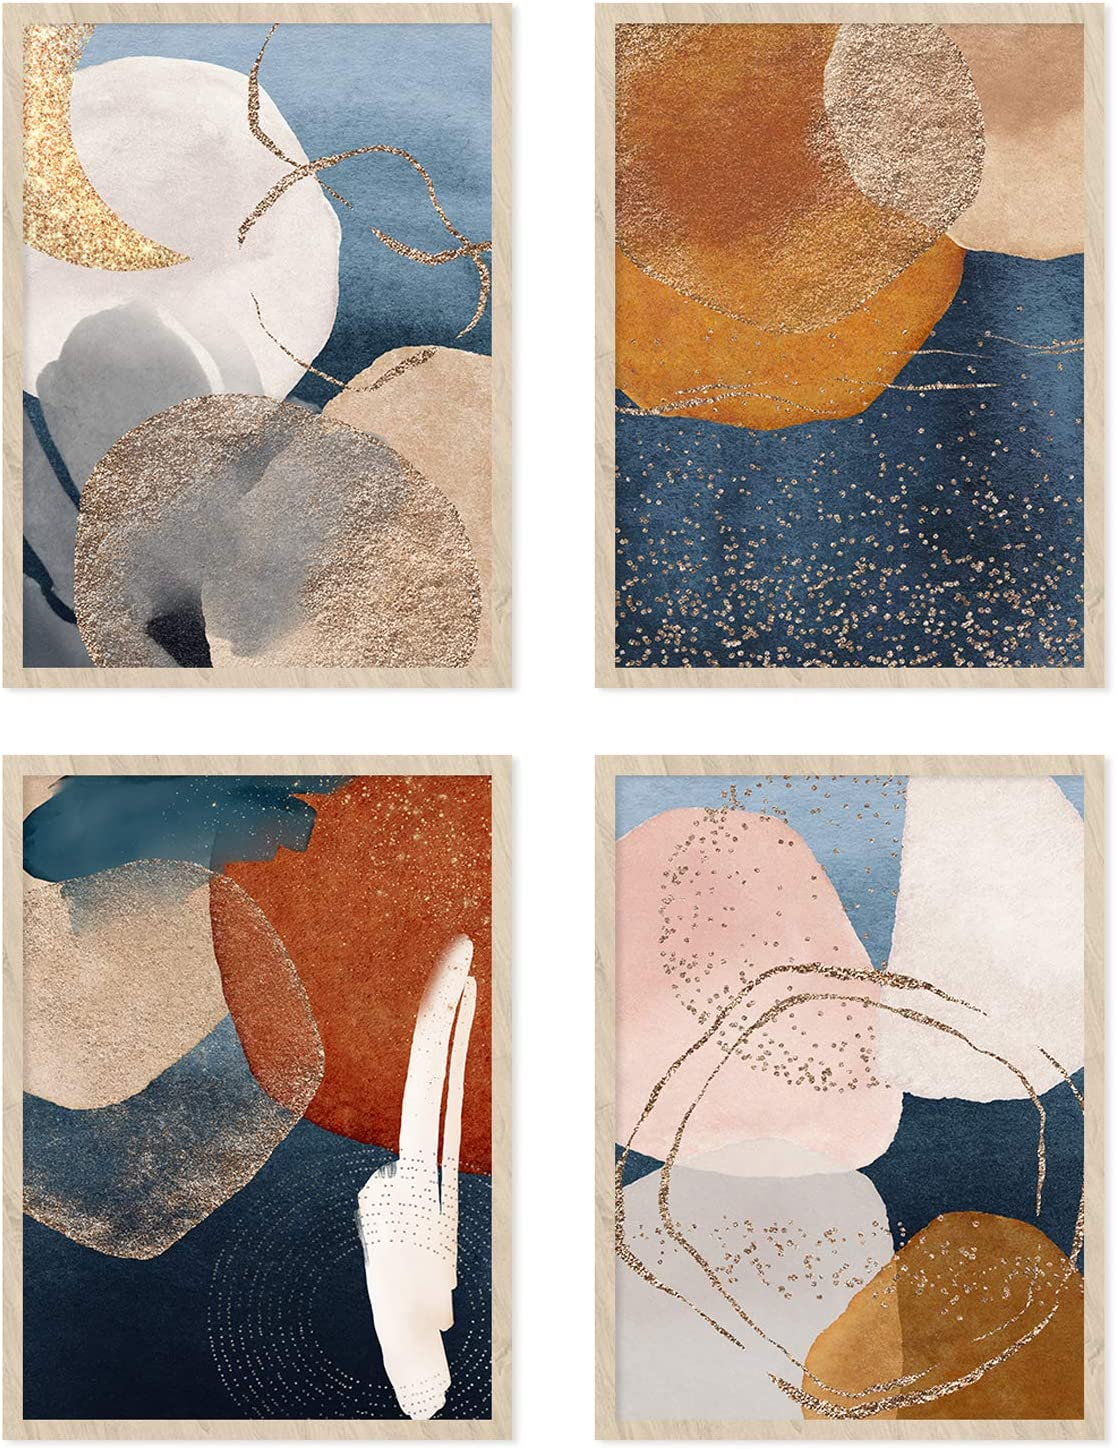 YUMKNOW Boho Abstract Wall Art - Unframed 11x14 Set of 4, Mid Century Modern Wall Decor for Bathroom, Minimalist Wall Art Print, Boho Room Decor for Office Gold Posters, Home Kitchen Bohemian Picture